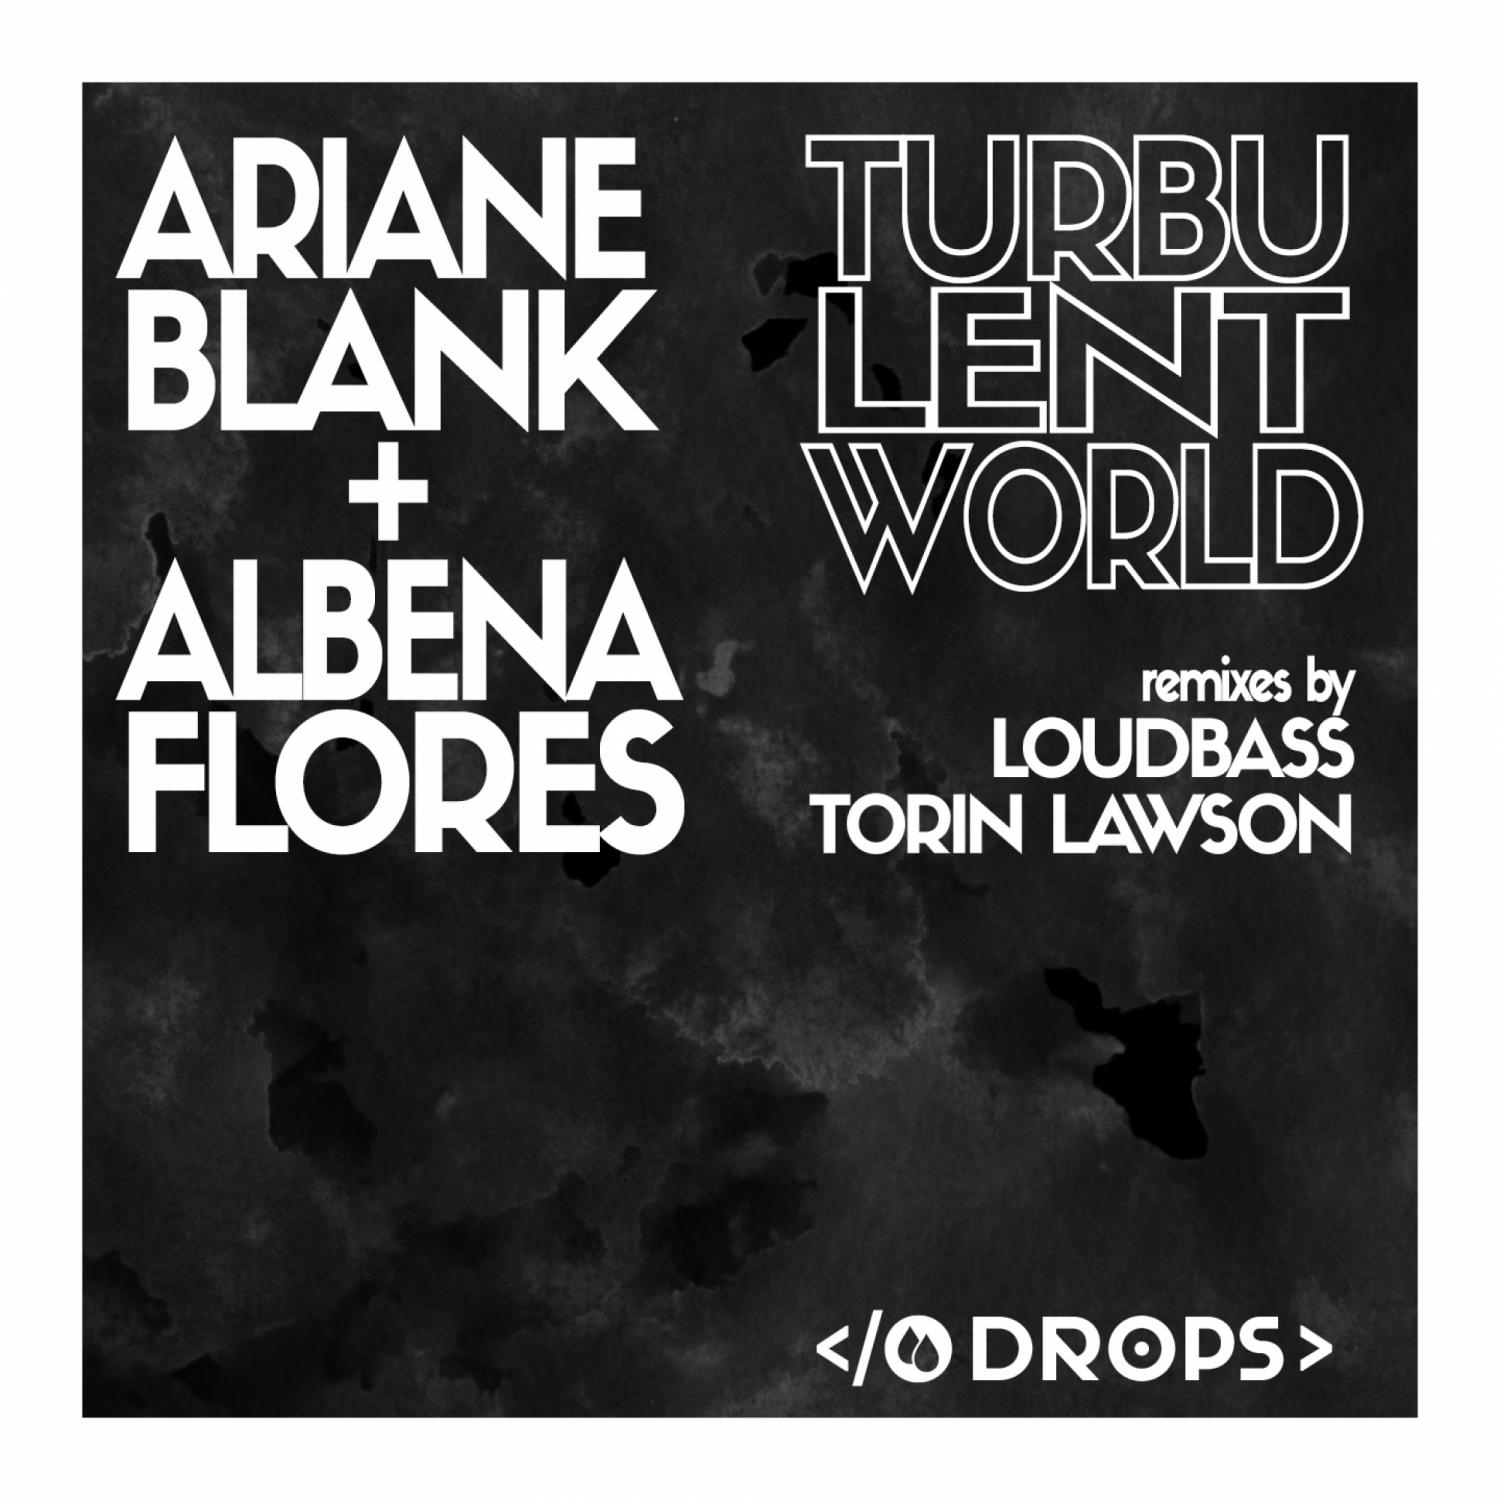 Ariane Blank, Albena Flores, Loudbass - Turbulent World (Loudbass Remix)